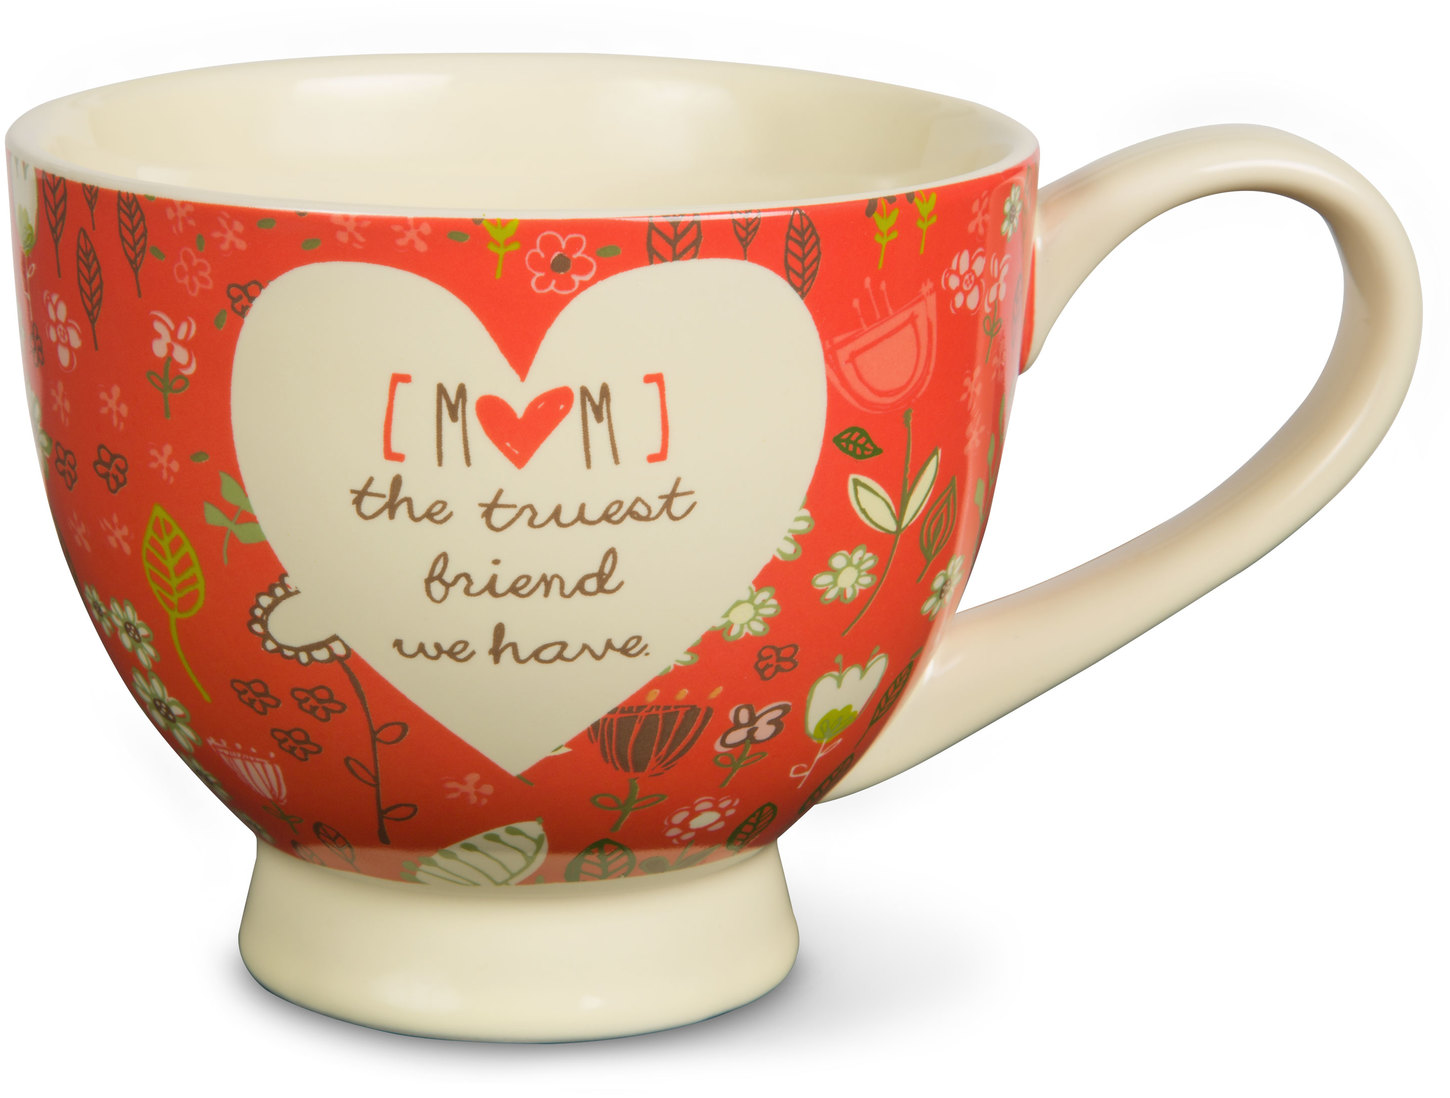 A Mother's Love Mom: The Truest Friend We Have Red Floral Soup Bowl Mug 17 oz by Pavilion Gift Company